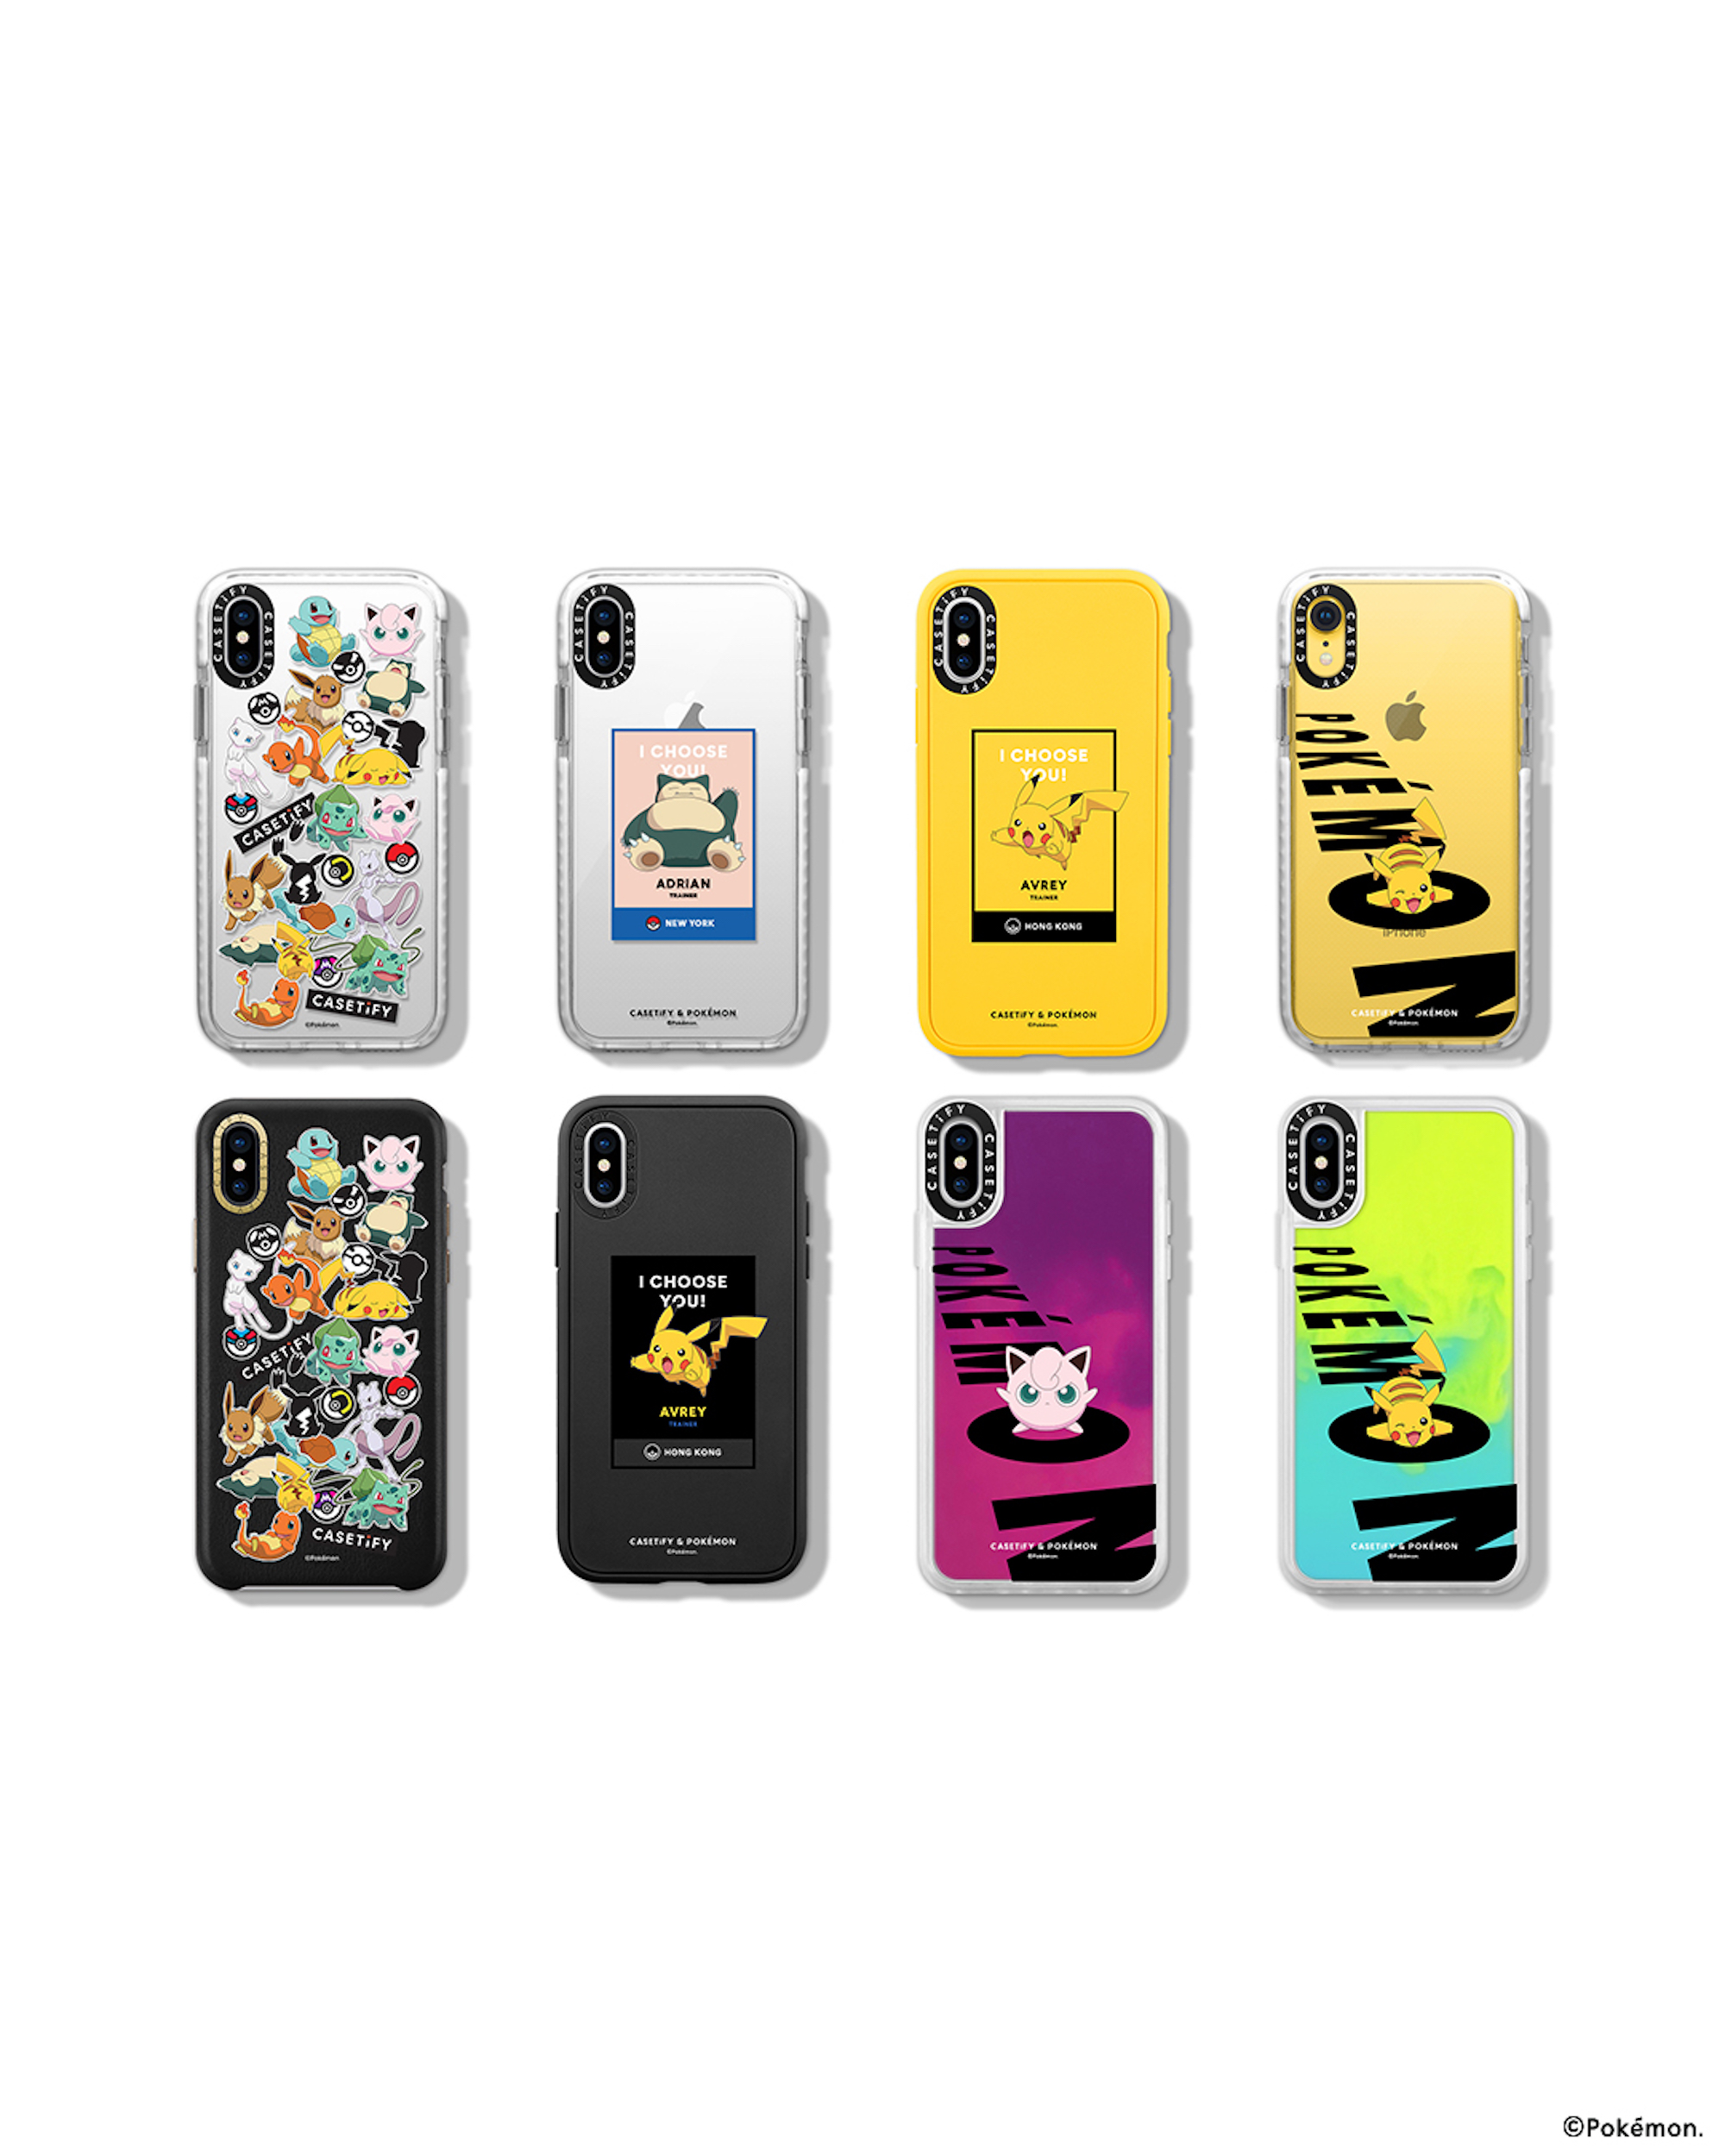 The CASETiFY & Pokémon Day and Night collection | Wonderland